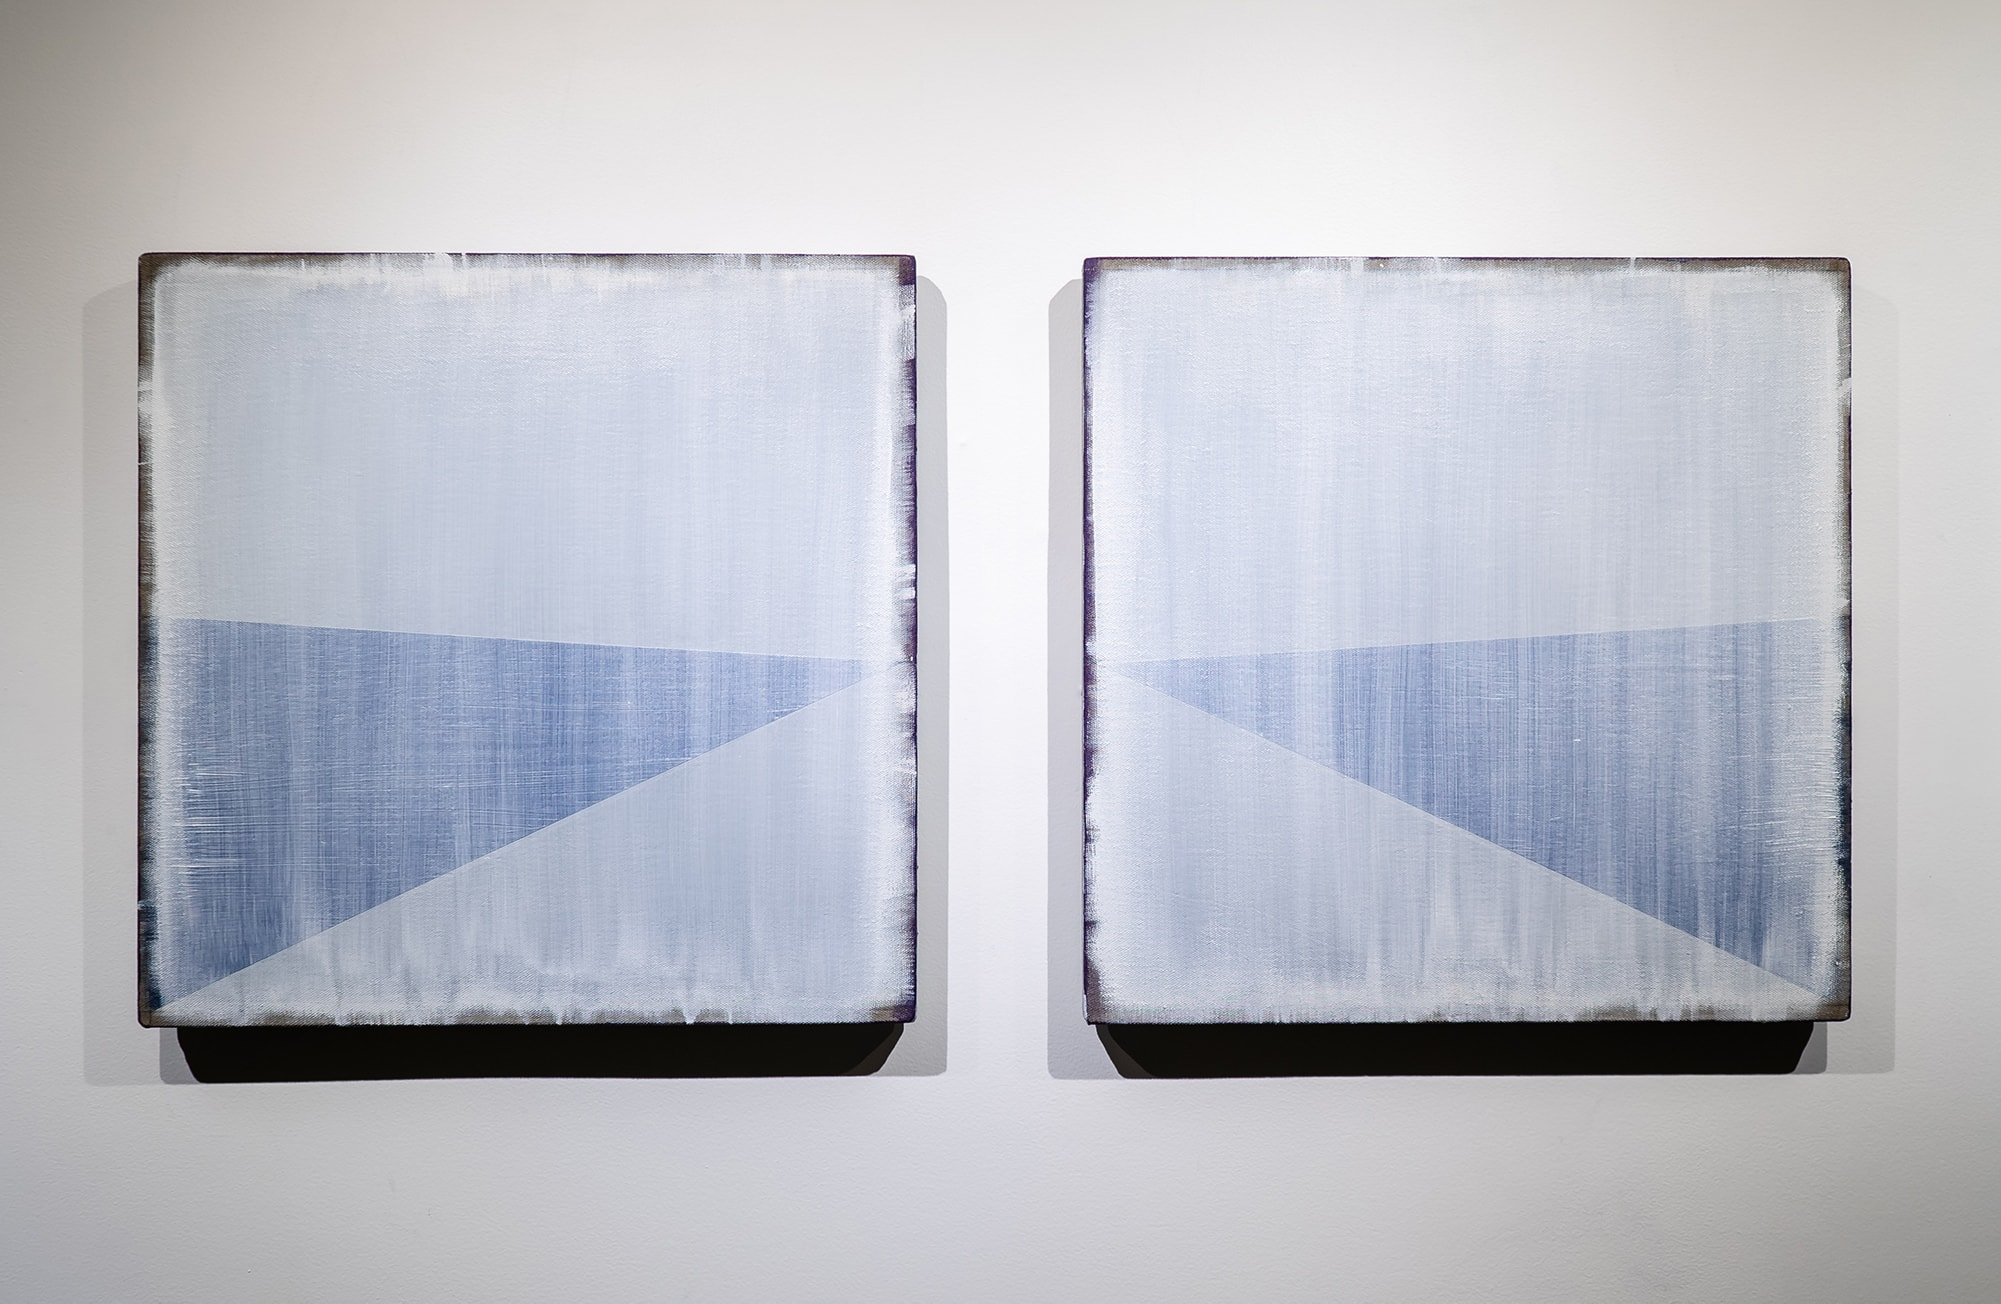 Randy Gibson : Rational Wedge 7:4 (Diptych)